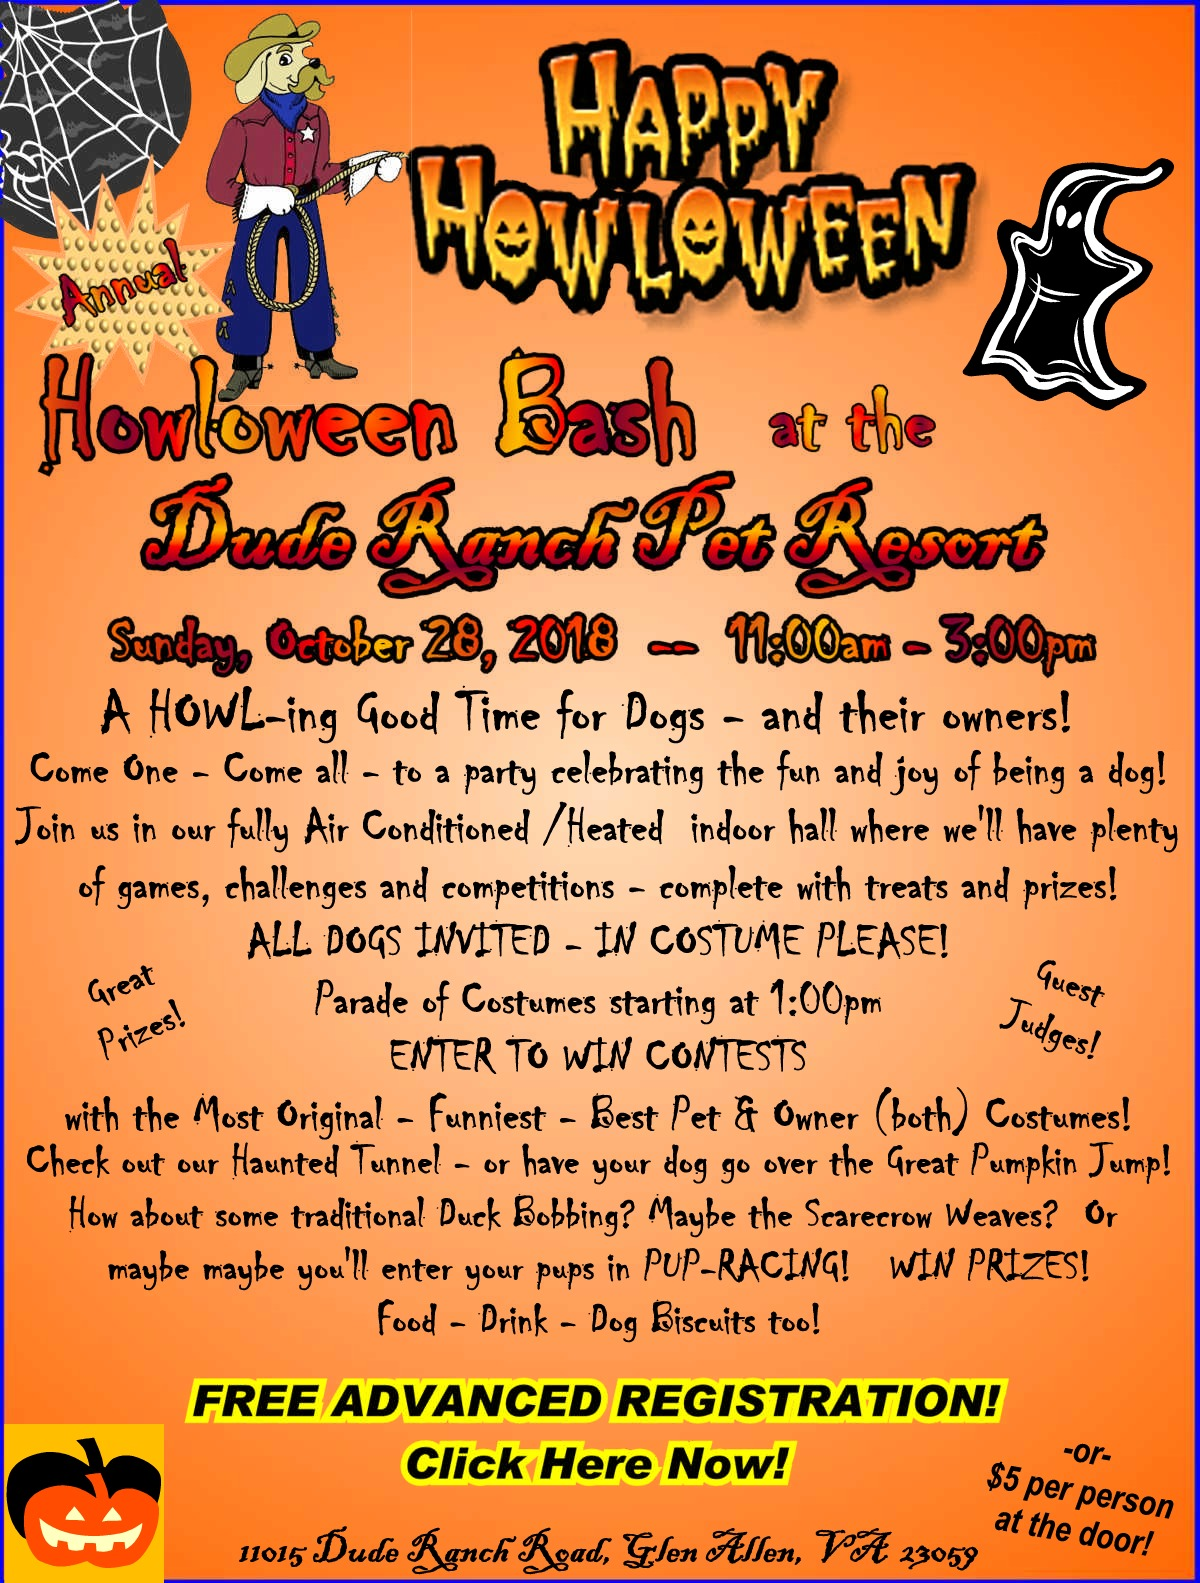 Join us at the Dude Ranch Pet Resort for a HOWLING FUN TIME of games, competition, prizes and more. Your pup in costume!